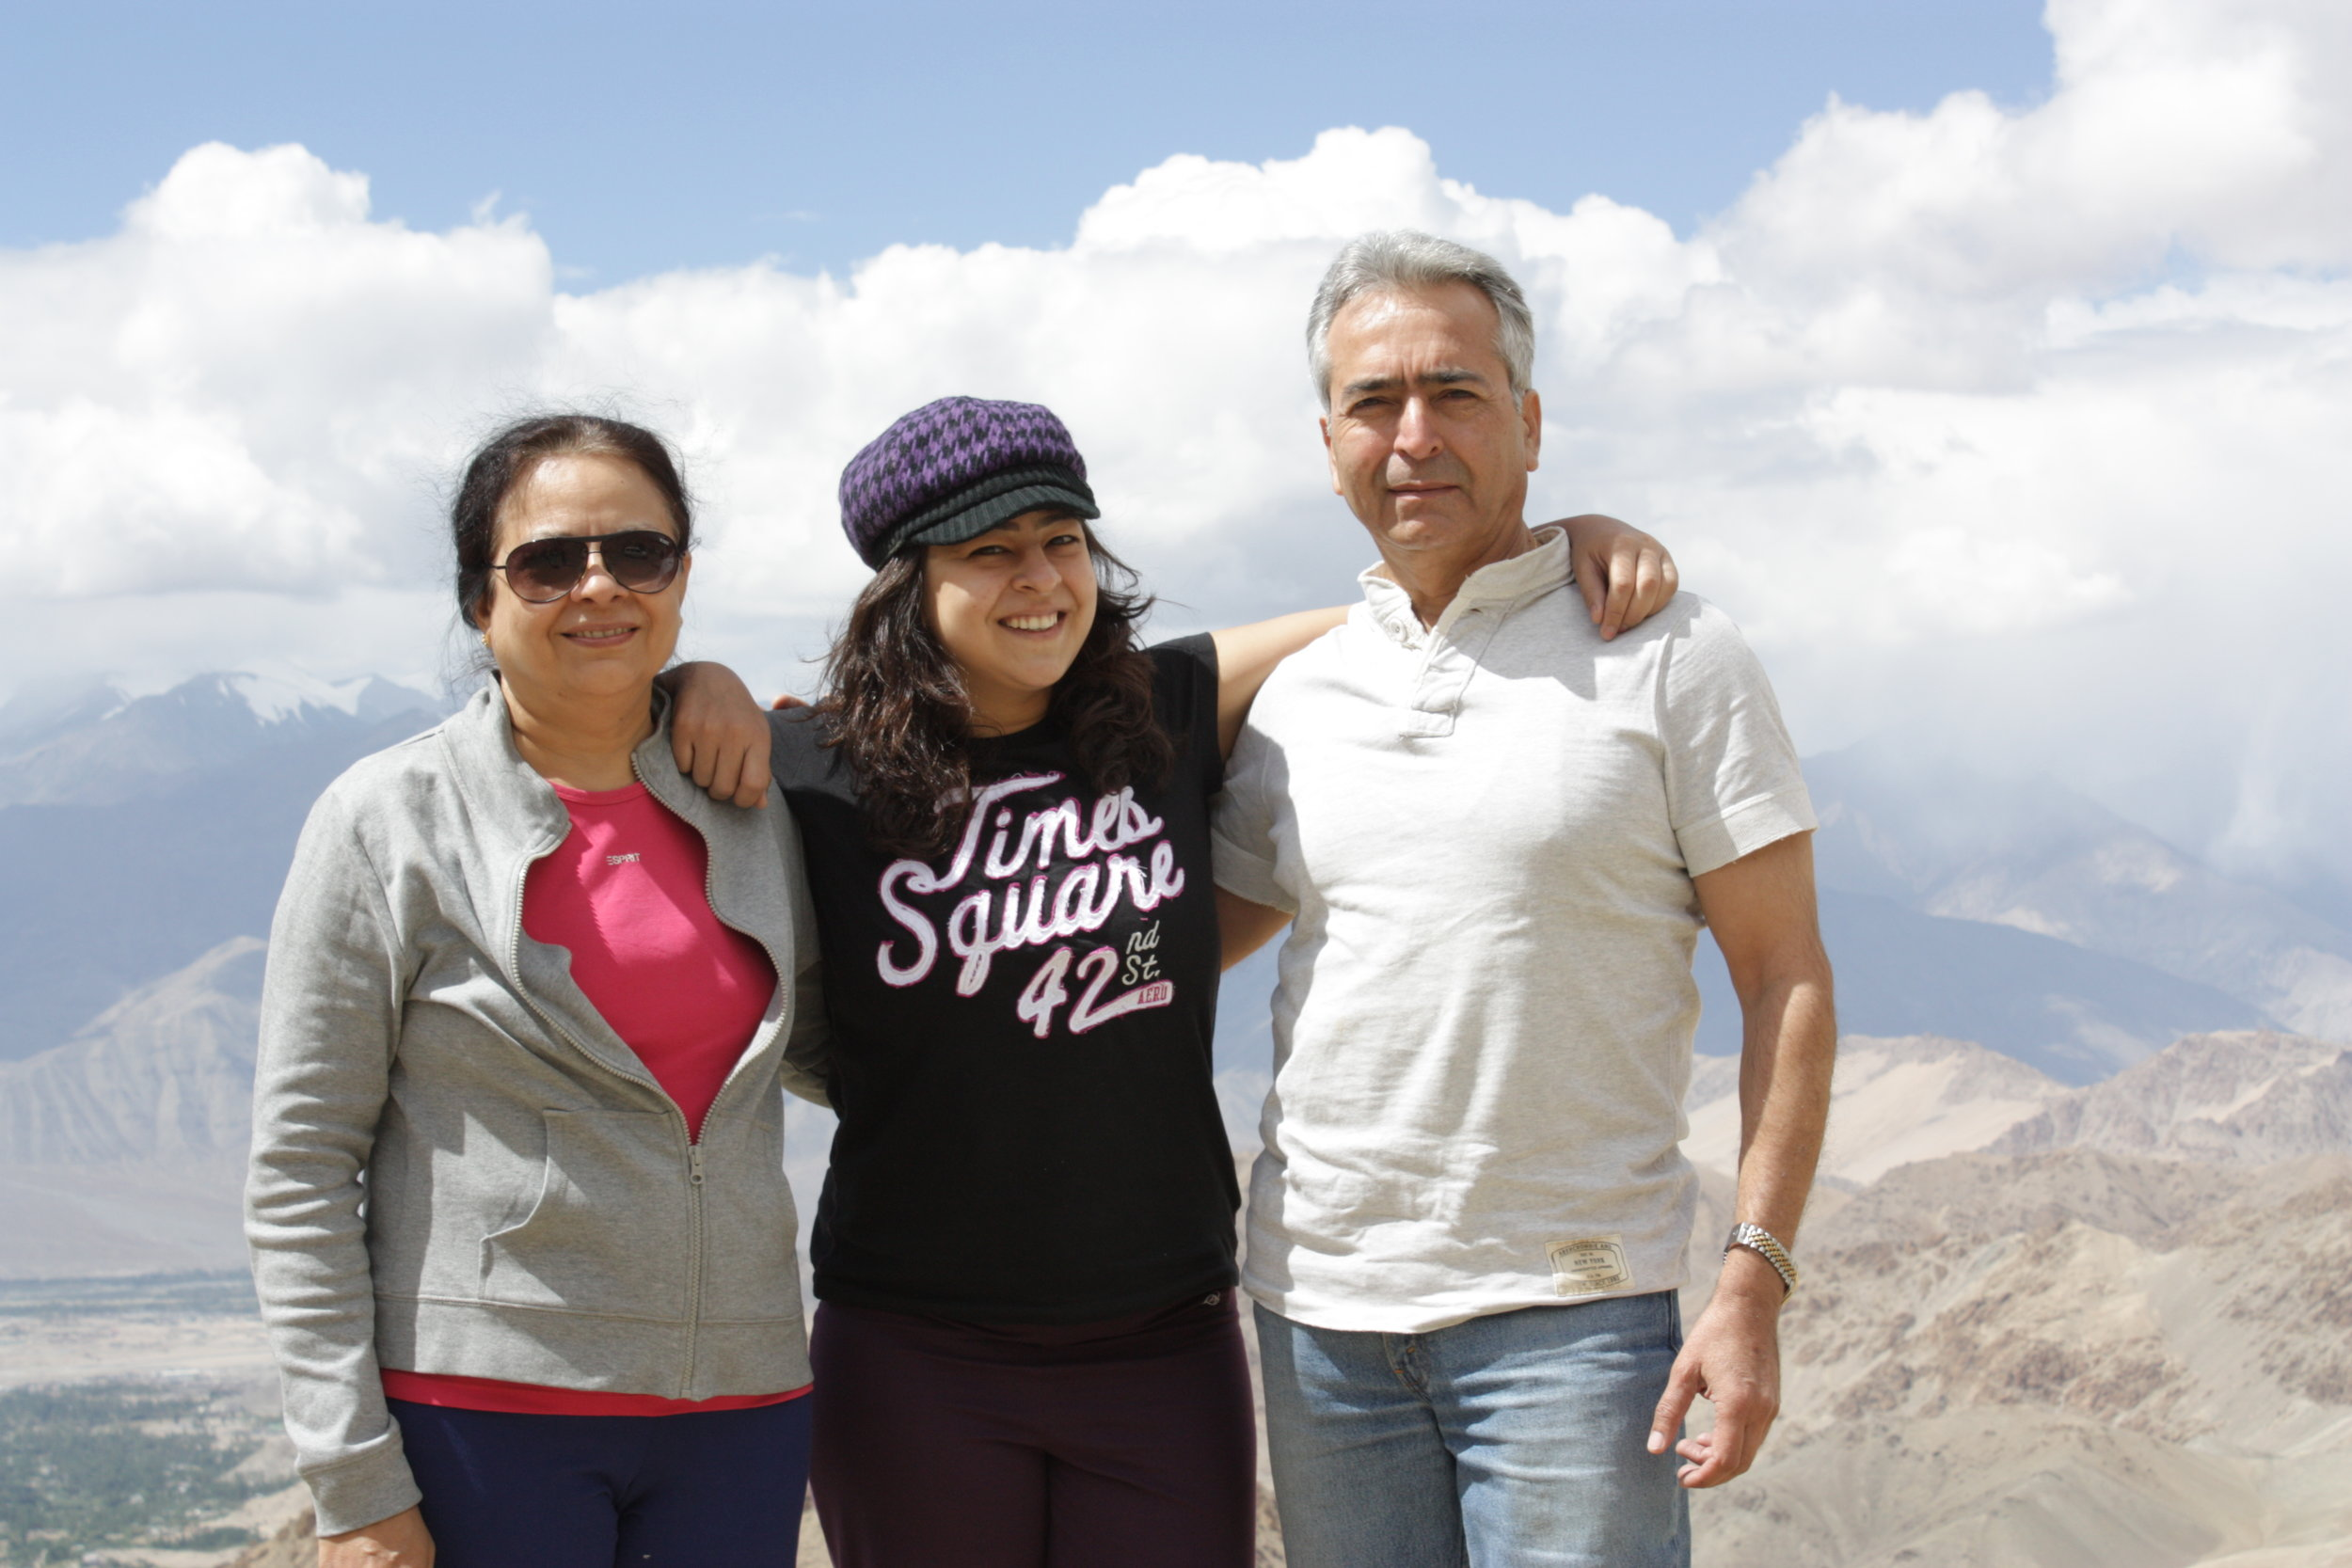 Arushi and her parents shining bright in Ladakh :)